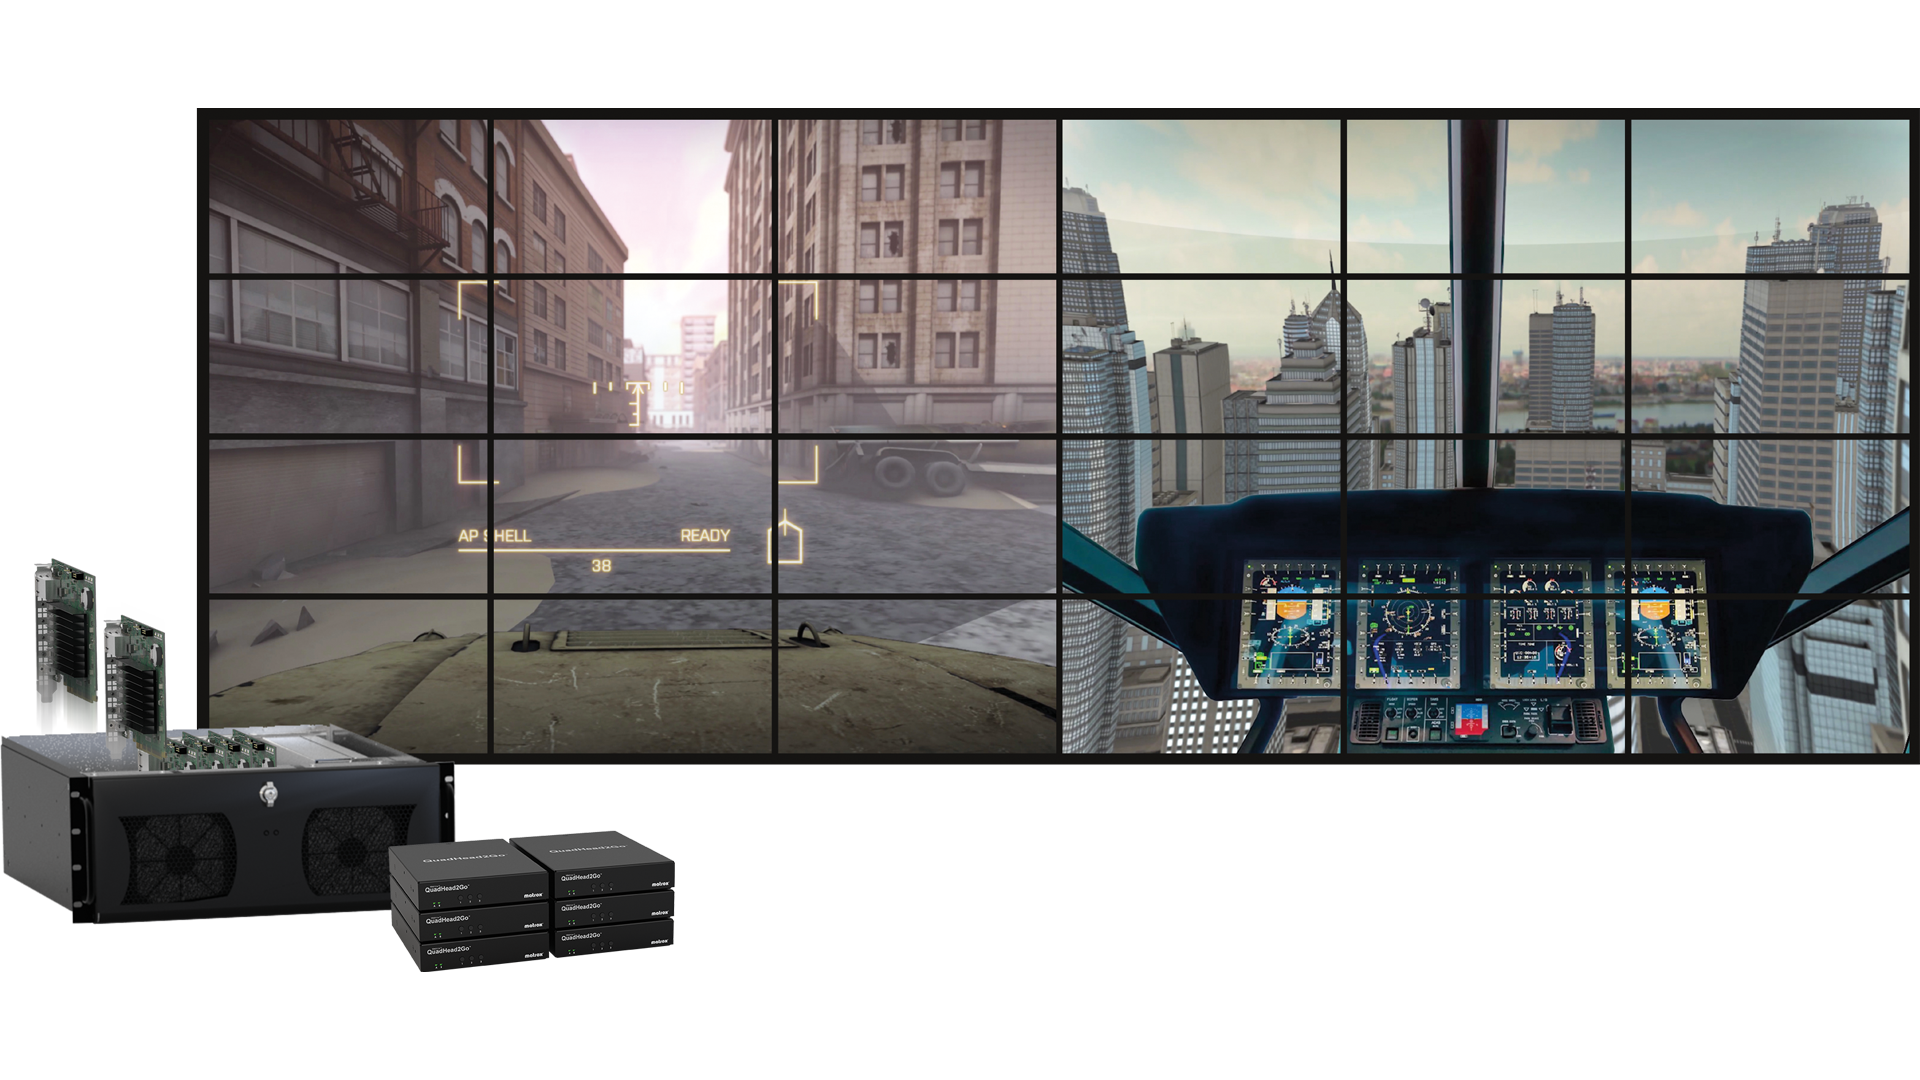 Matrox Mura IPX capture and IP encode/decode and Matrox QuadHead2Go multi-monitor controllers are ideal for visualization and training applications.